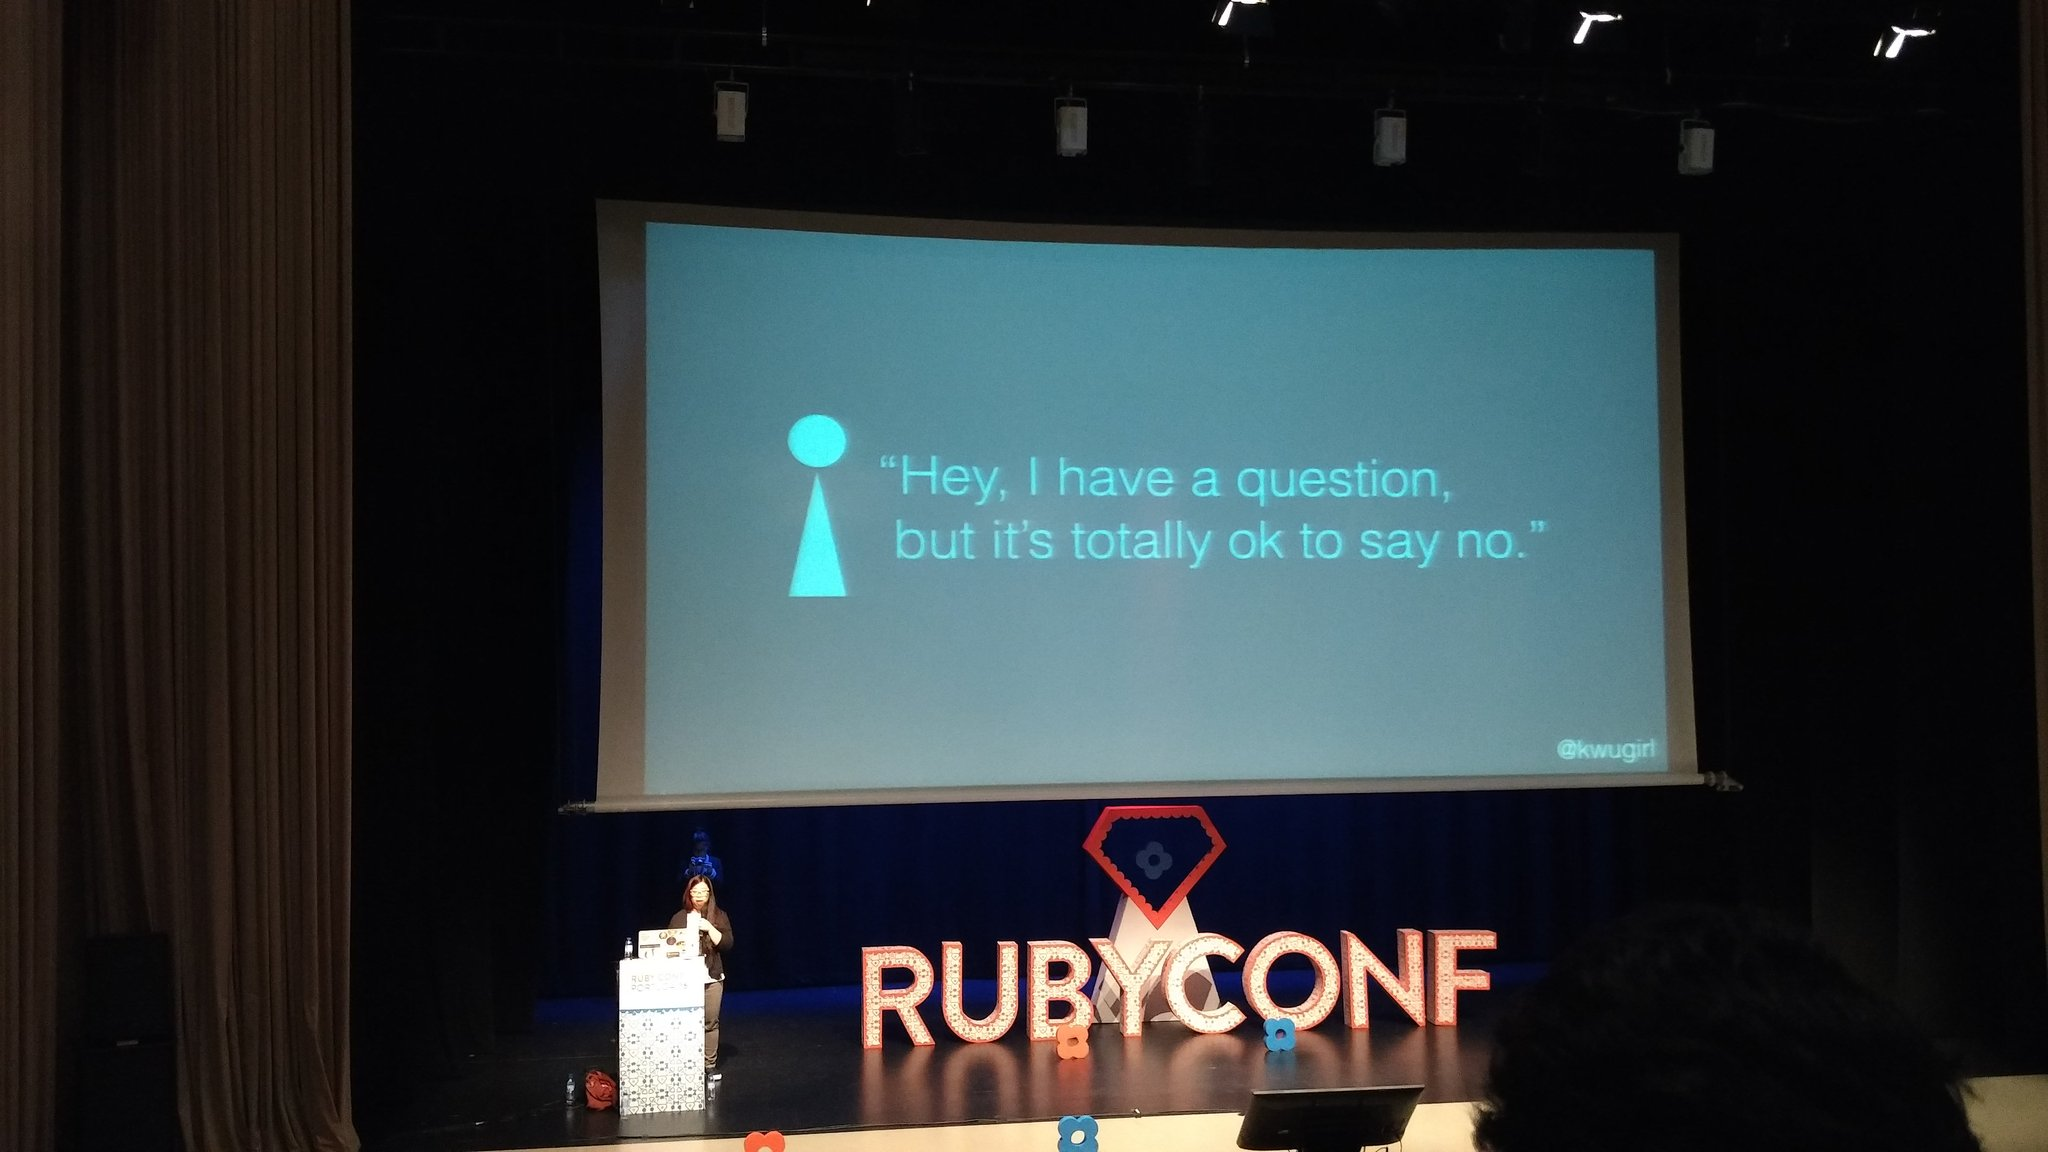 .@kwugirl up on stage at @rubyconfpt talking about ask vs. guess culture and some helpful tips! https://t.co/Rz0epU66Er